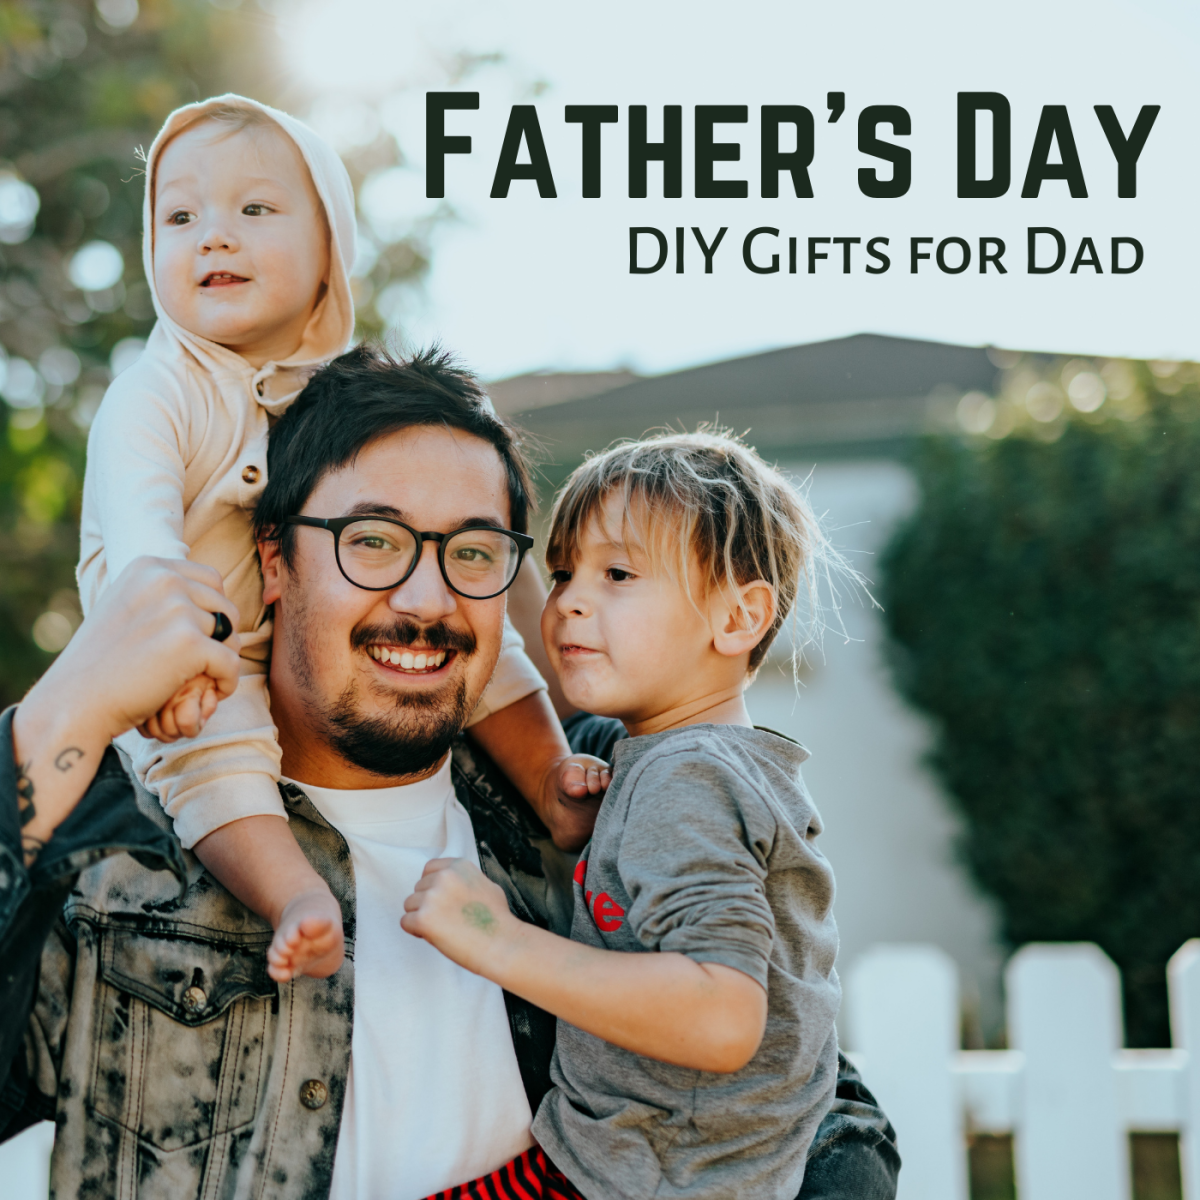 Make a thoughtful, inexpensive gift for Dad this year!